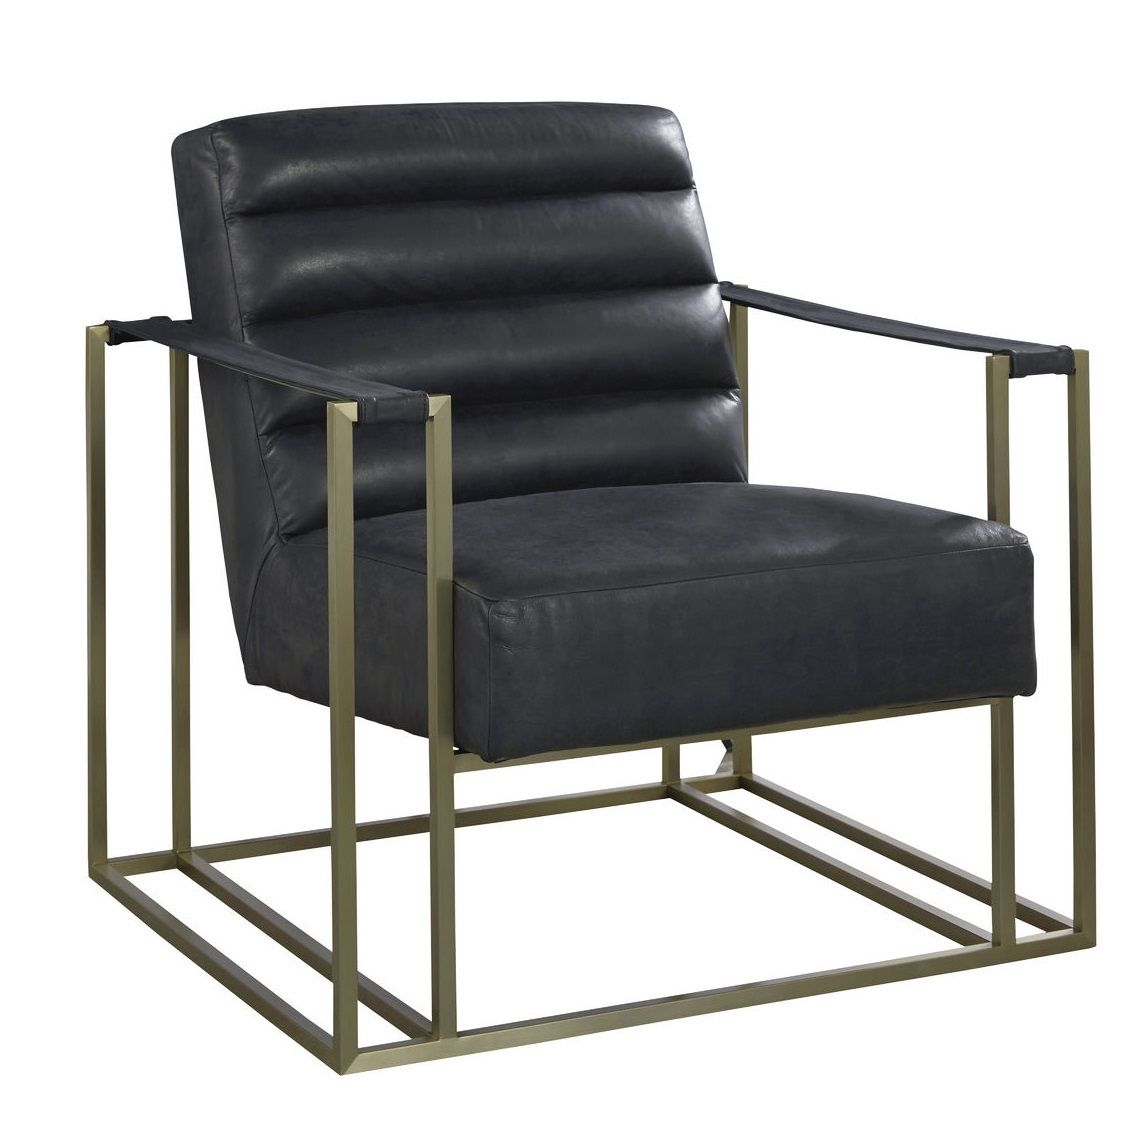 Jensen Modern Black Leather Club Chair Modern Leather Chair Mid